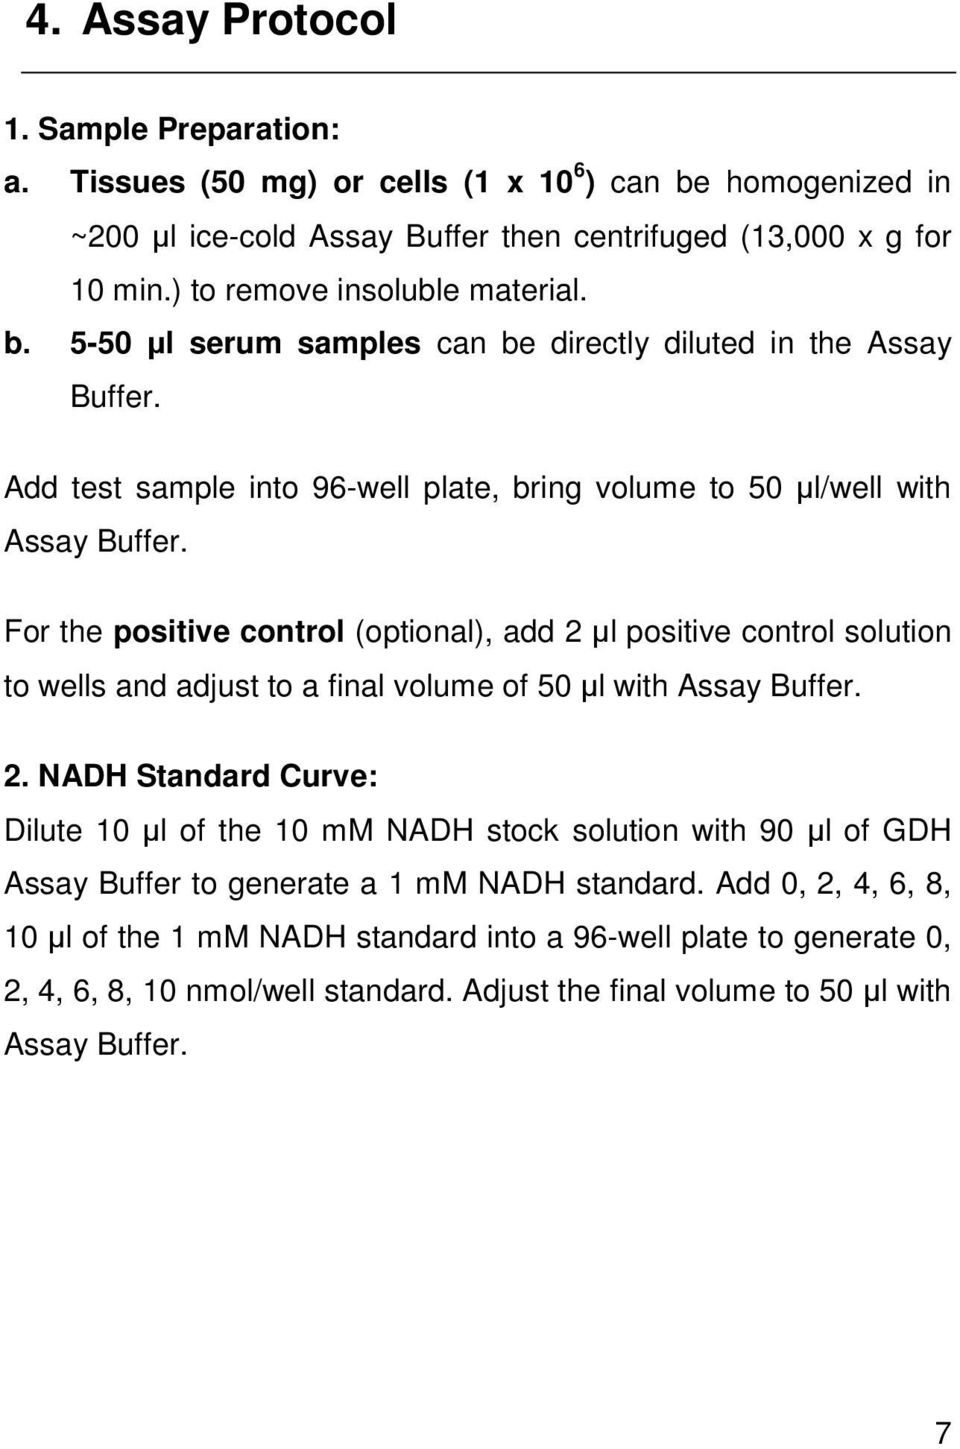 For the positive control (optional), add 2 µl positive control solution to wells and adjust to a final volume of 50 µl with Assay Buffer. 2. NADH Standard Curve: Dilute 10 µl of the 10 mm NADH stock solution with 90 µl of GDH Assay Buffer to generate a 1 mm NADH standard.